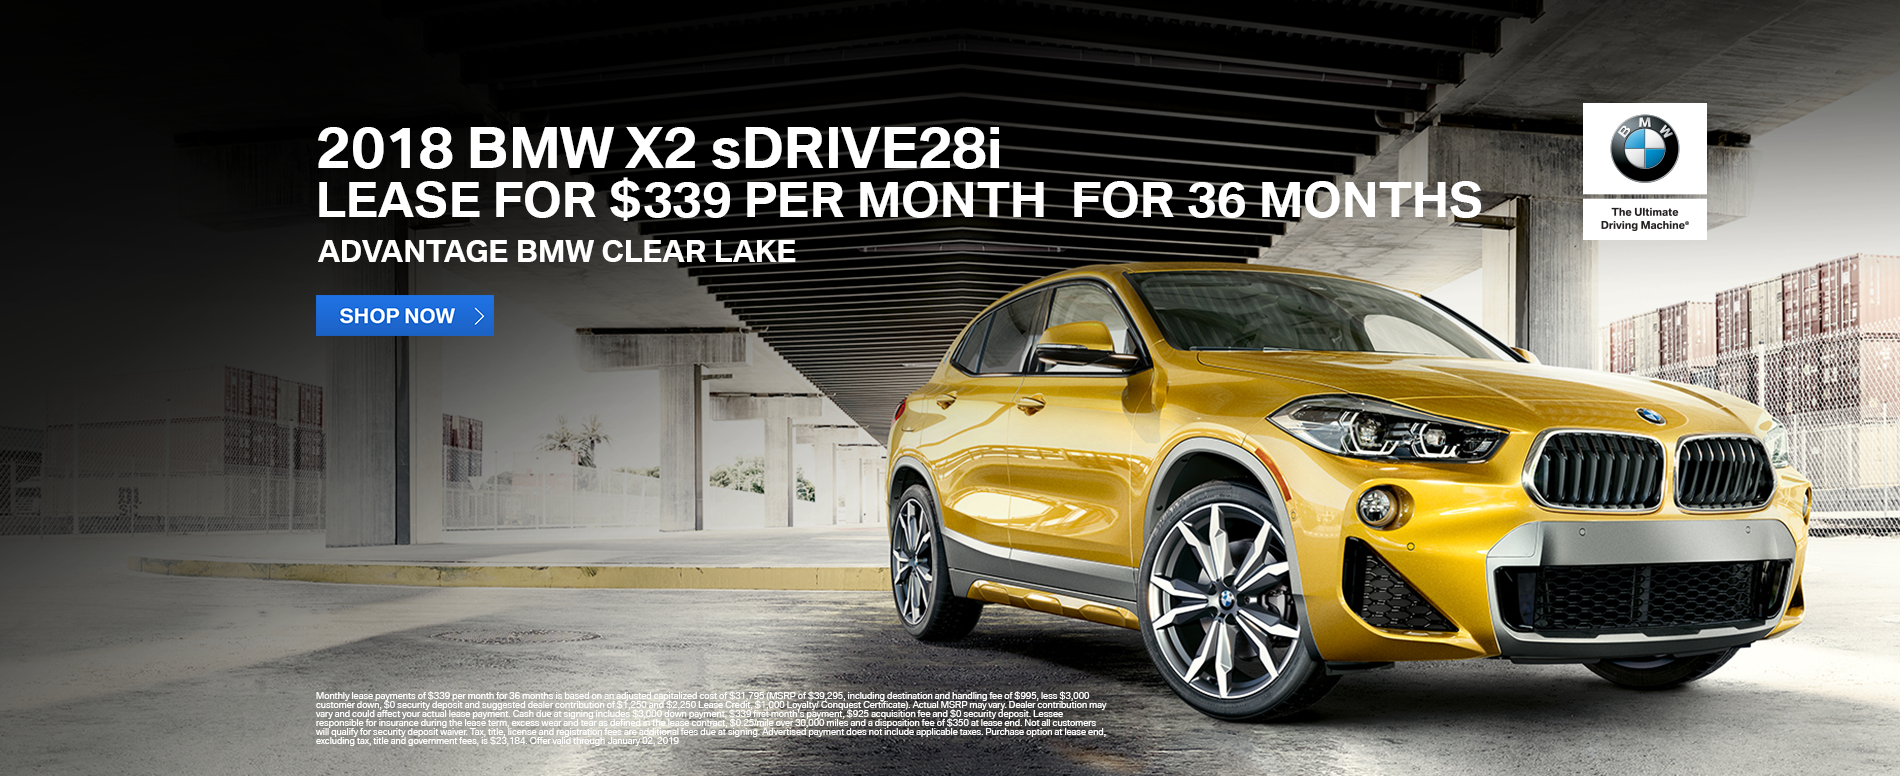 lease-2018-x2-sdrive28i-for-339-per-month-clearlake-bmw